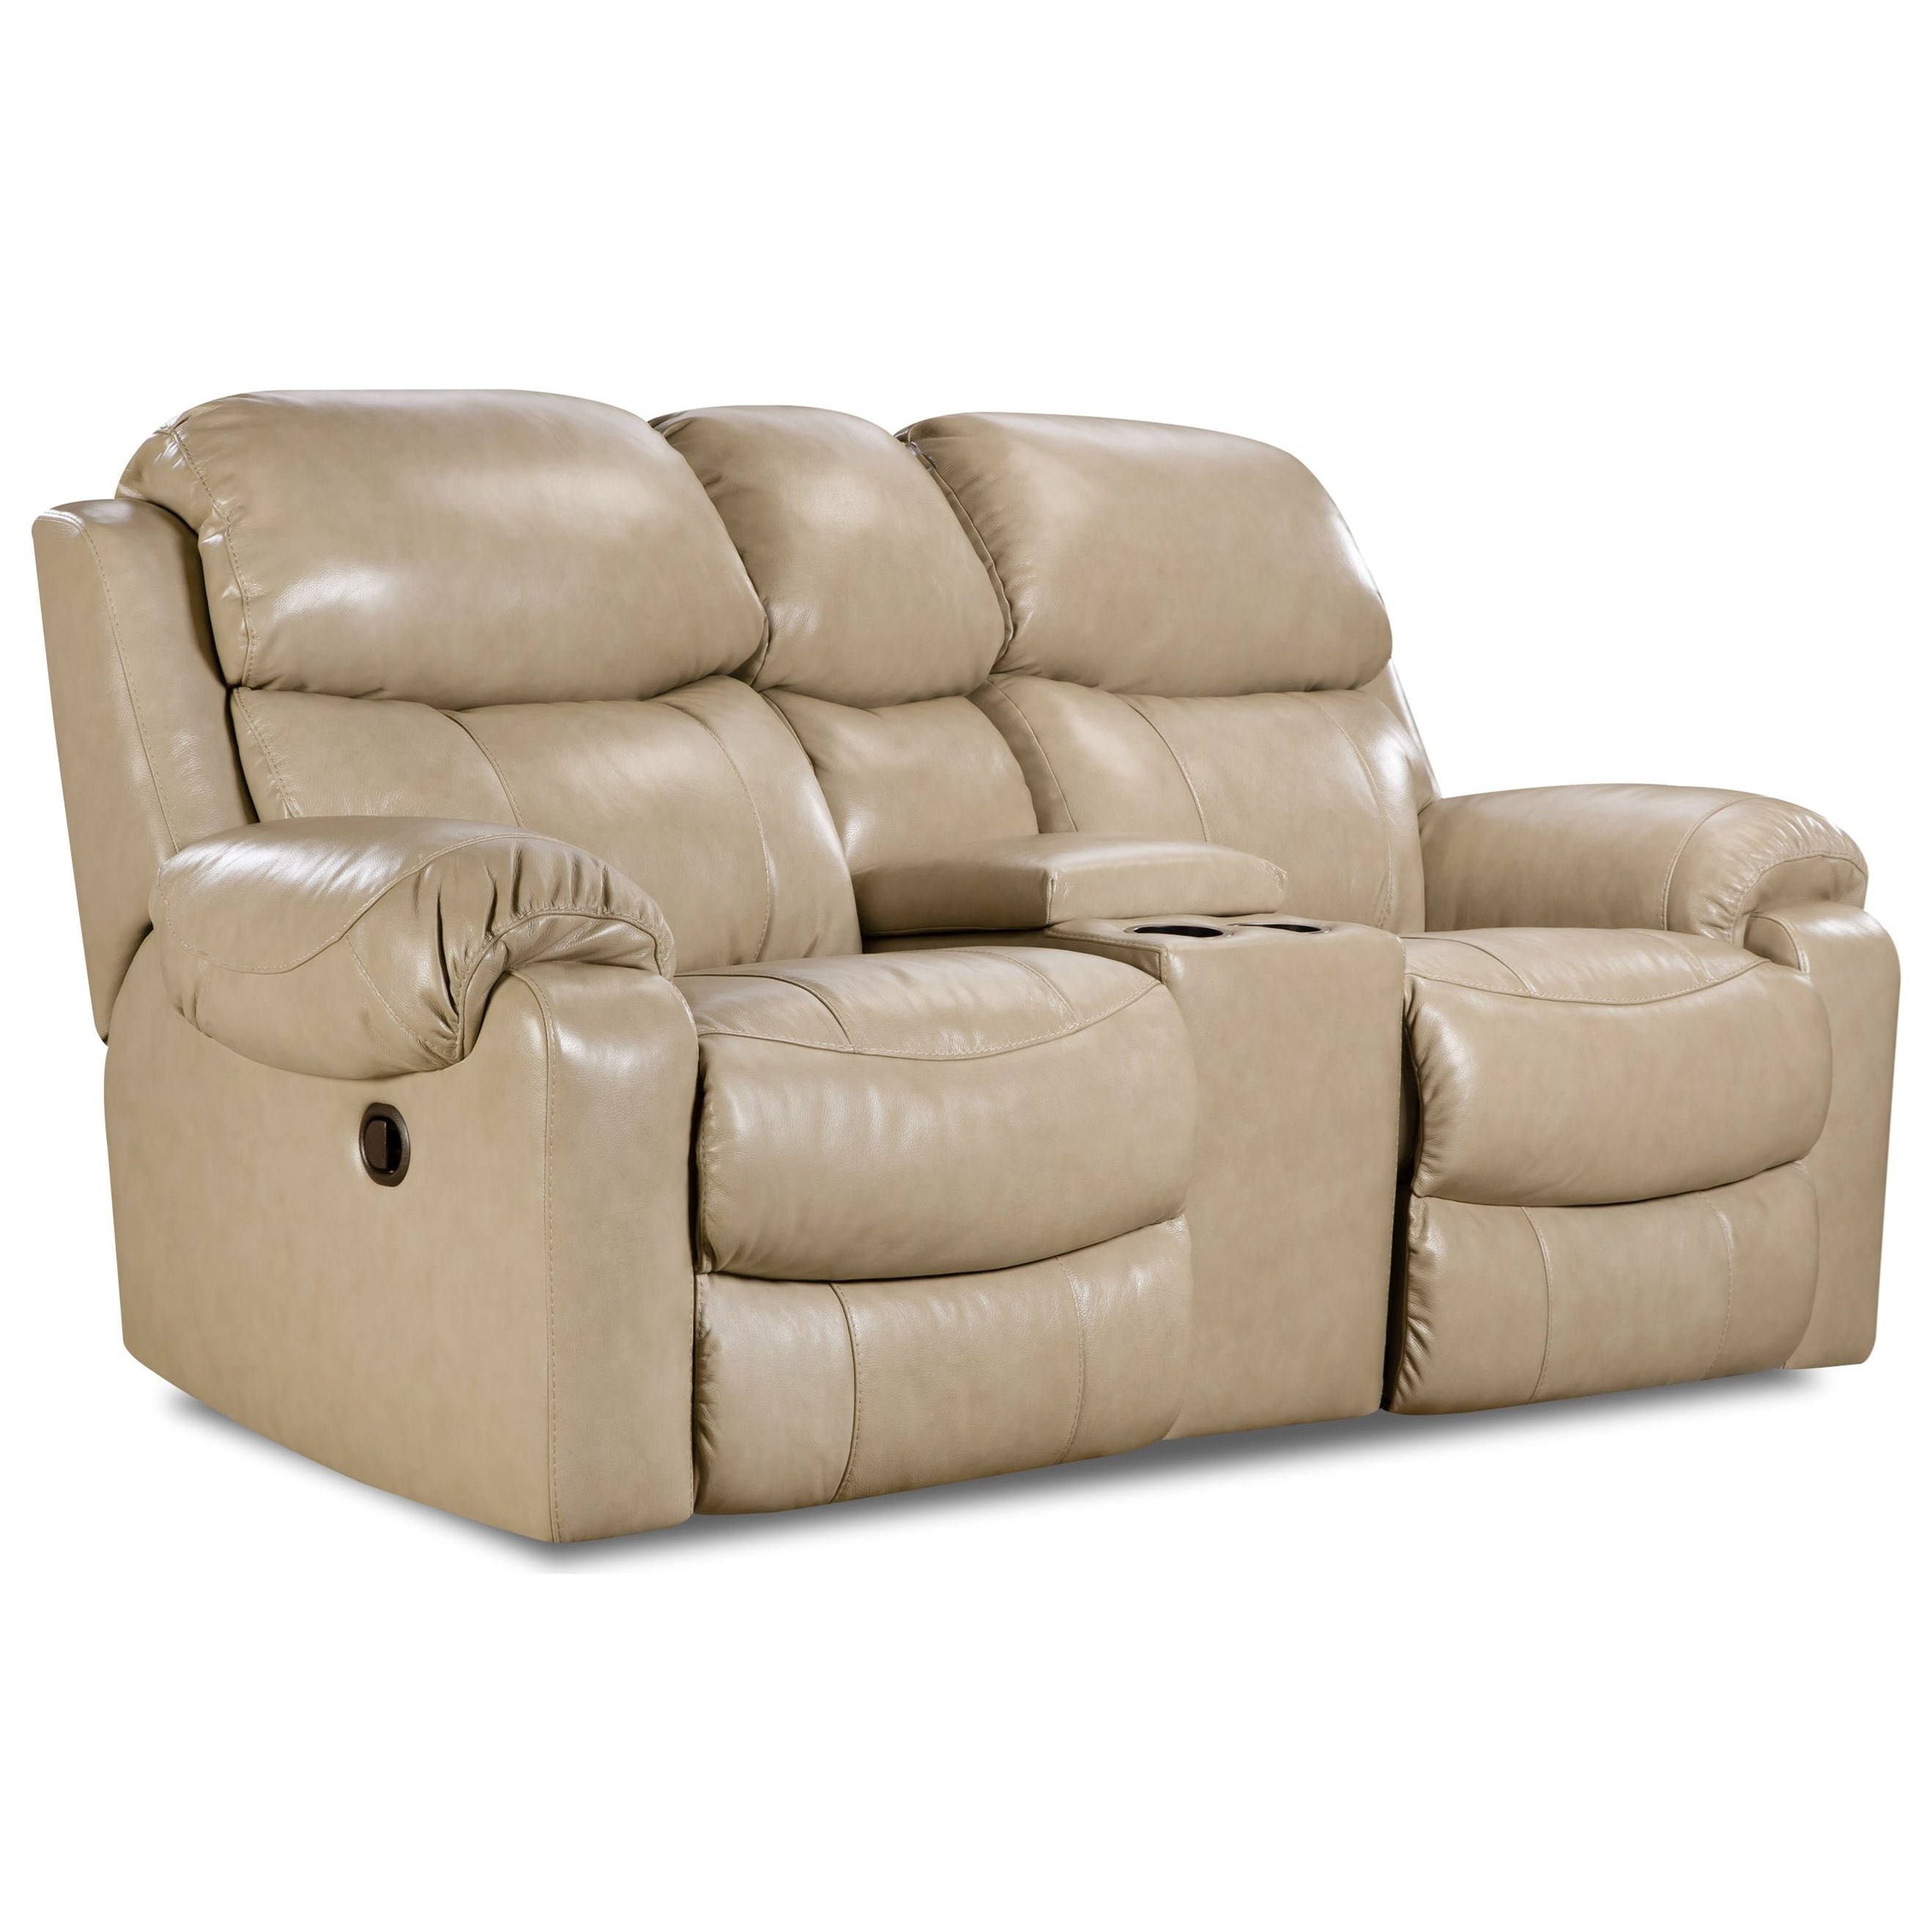 Comfort Living 135 Collection Power Reclining Loveseat - Item Number: 135-29-10